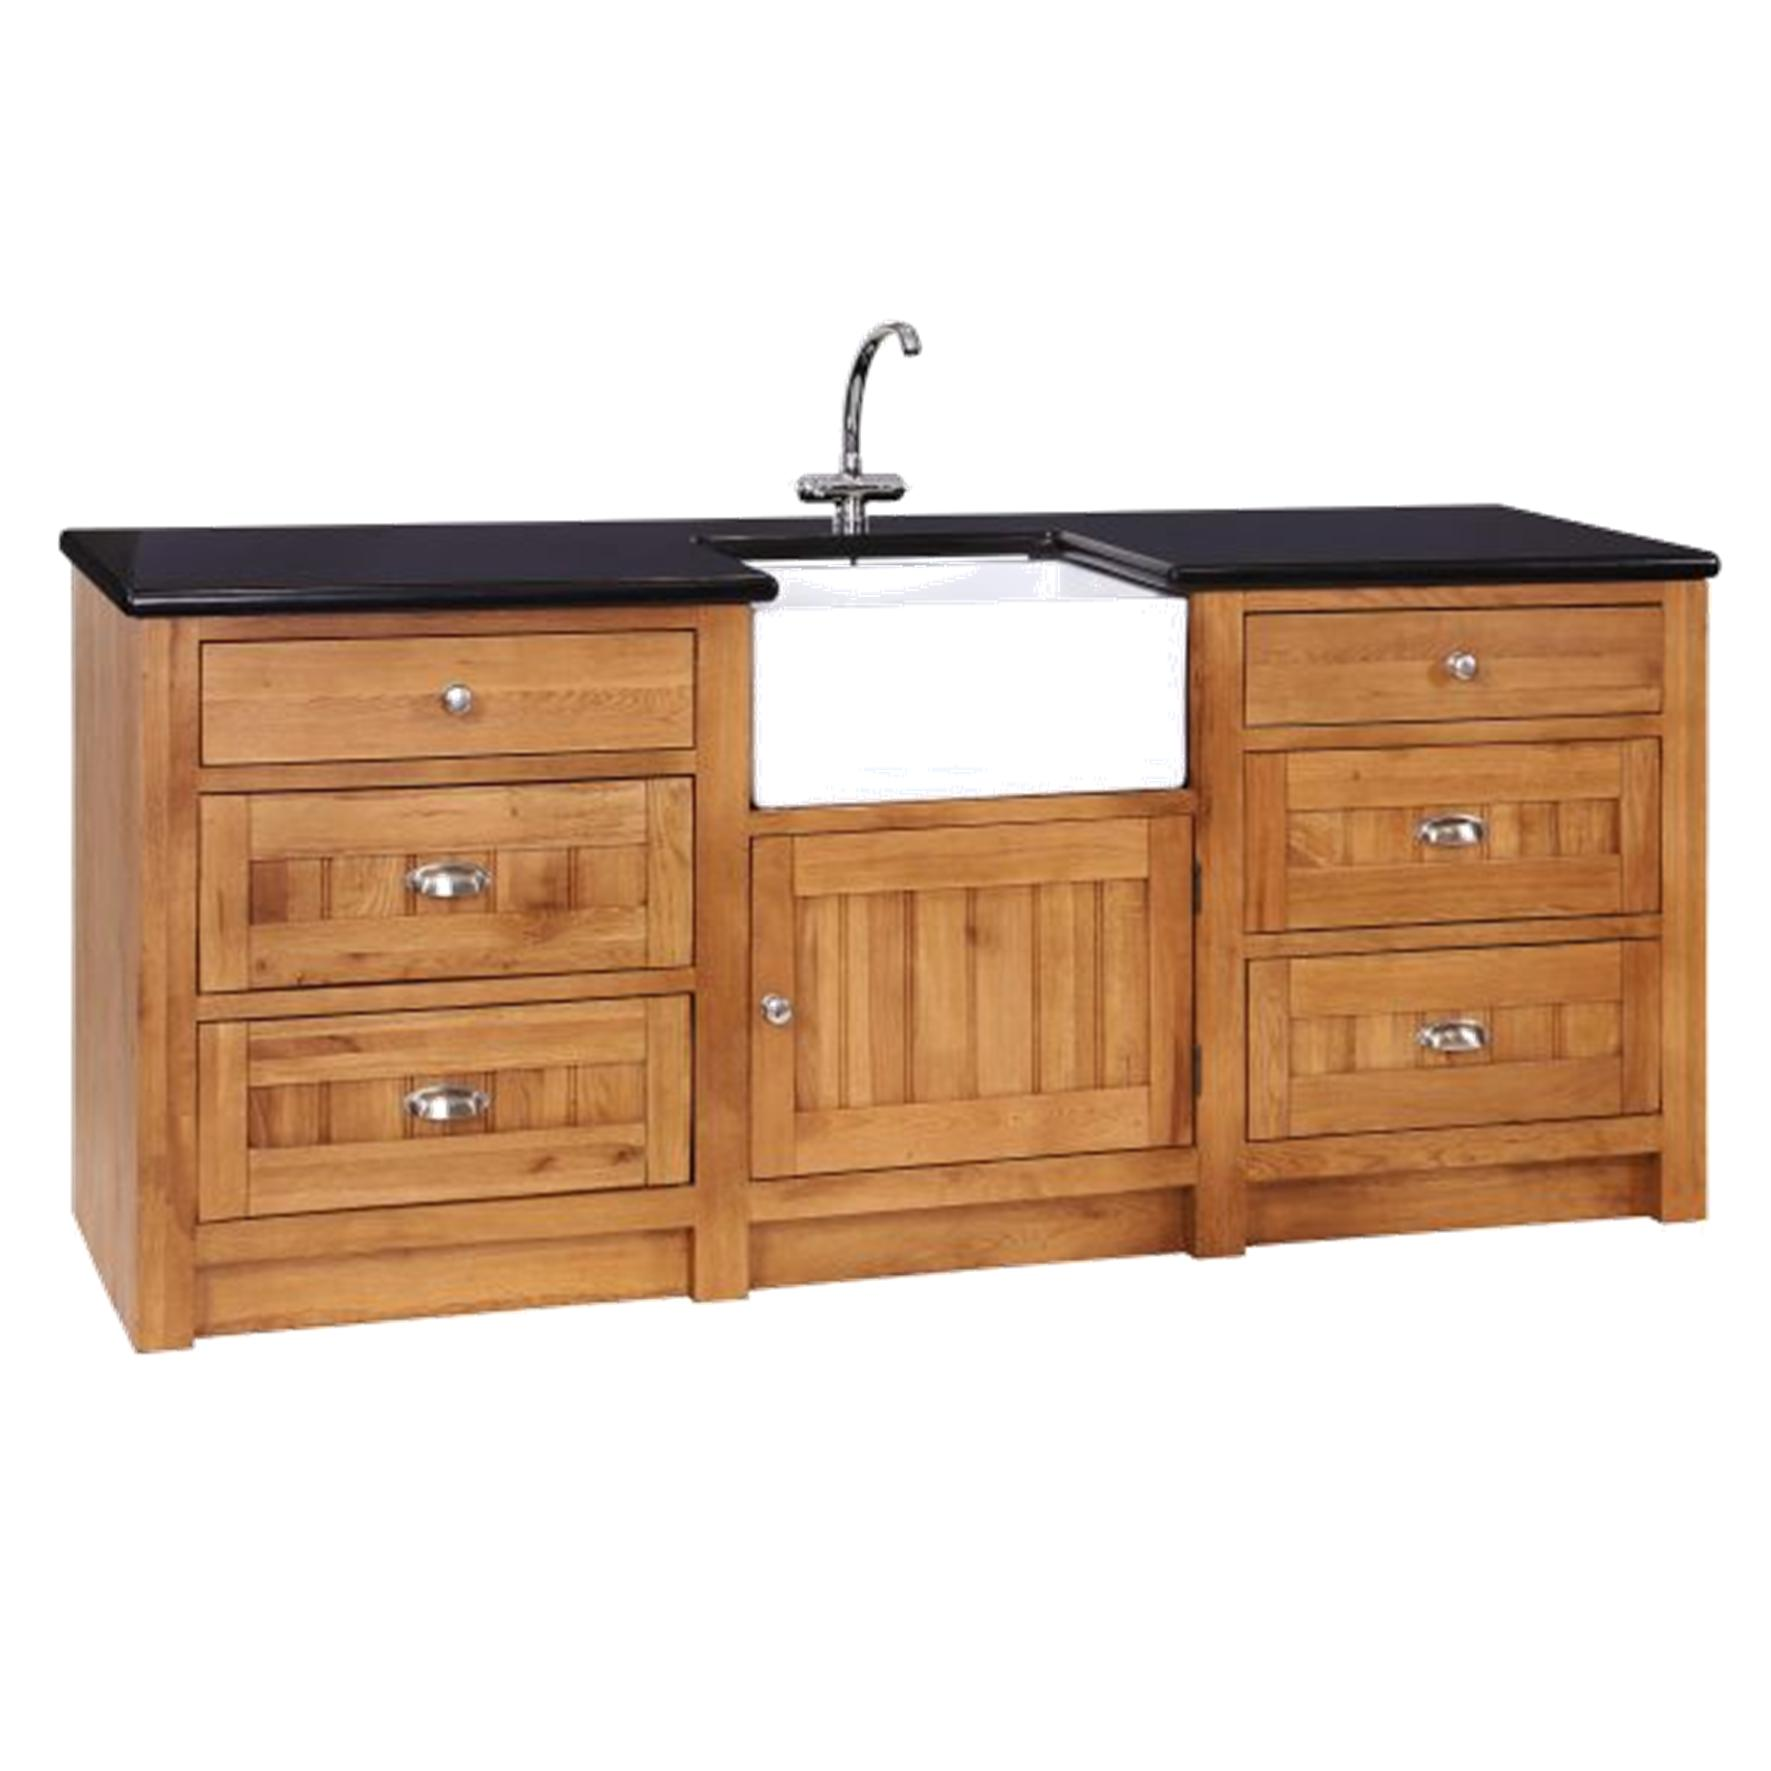 Avelyn - Sink Unit with 1 Door & 6 Drawers